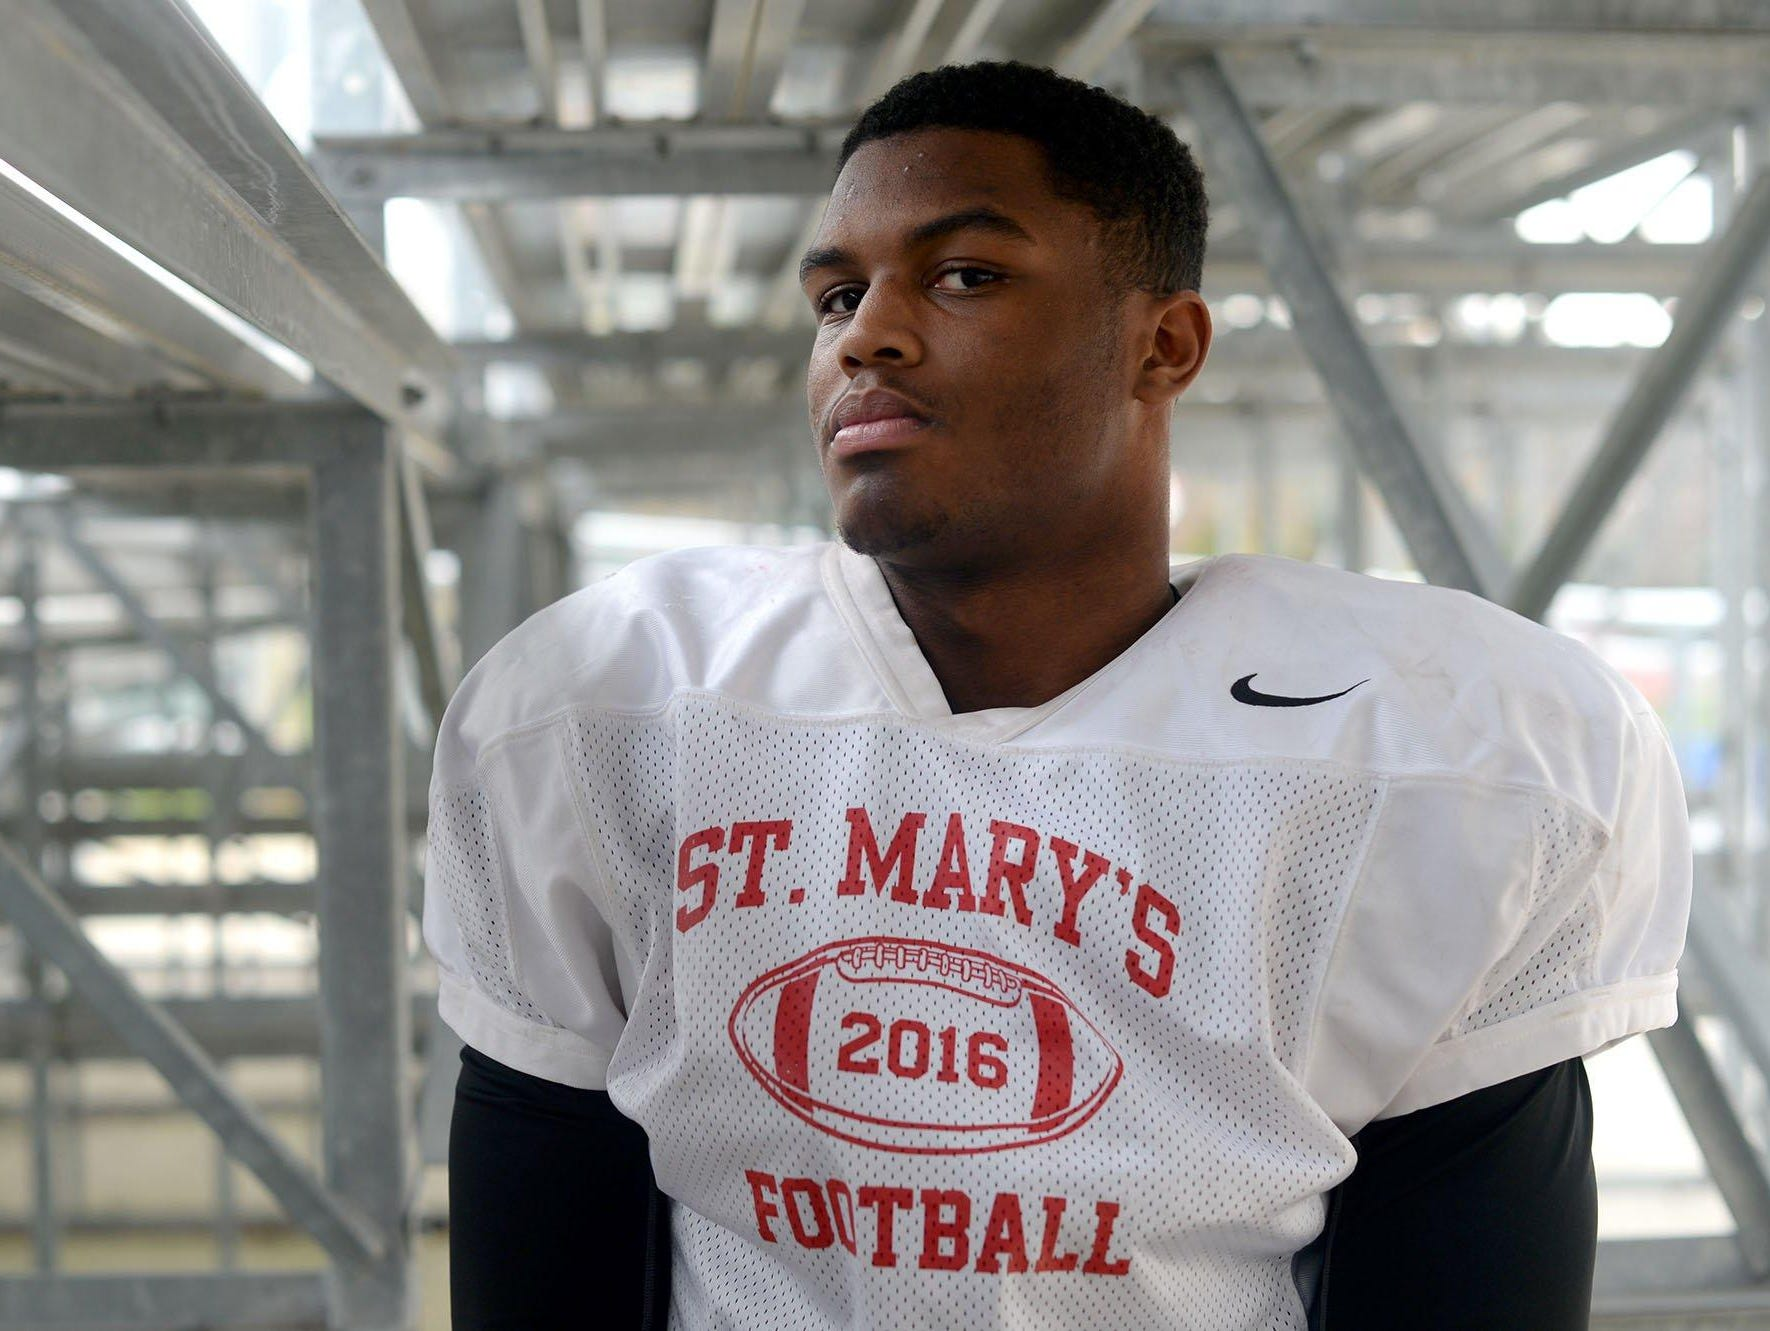 Josh Ross hopes to lead Orchard Lake St. Mary's to a third straight state title. Like his older brother James, Josh plans to attend U-M.